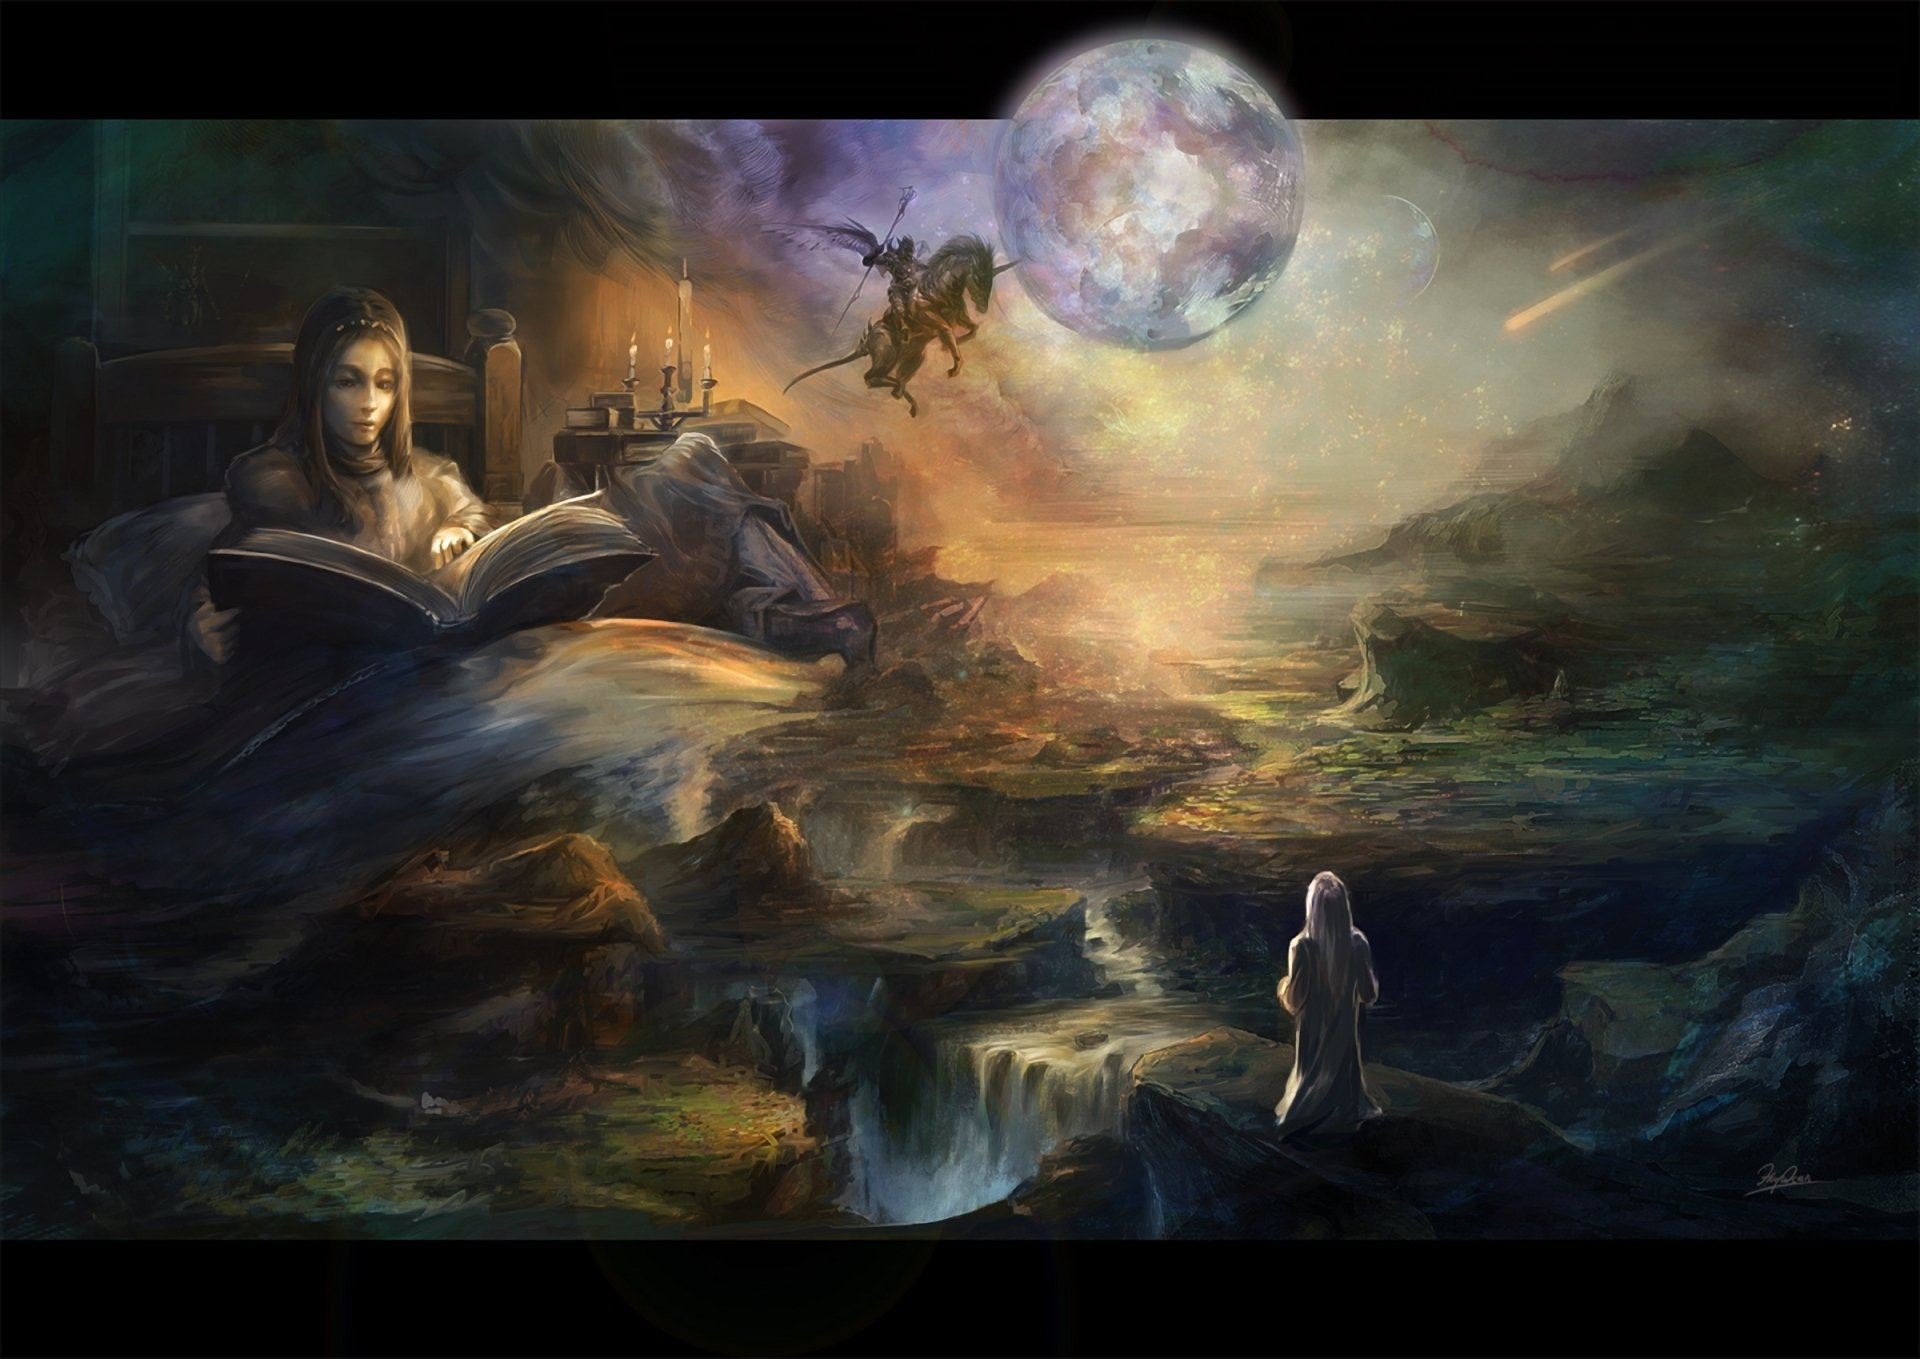 Girl Wallpapers Pics Art Book Moon Bed Girl Tales Landscape Comet Rider Wings